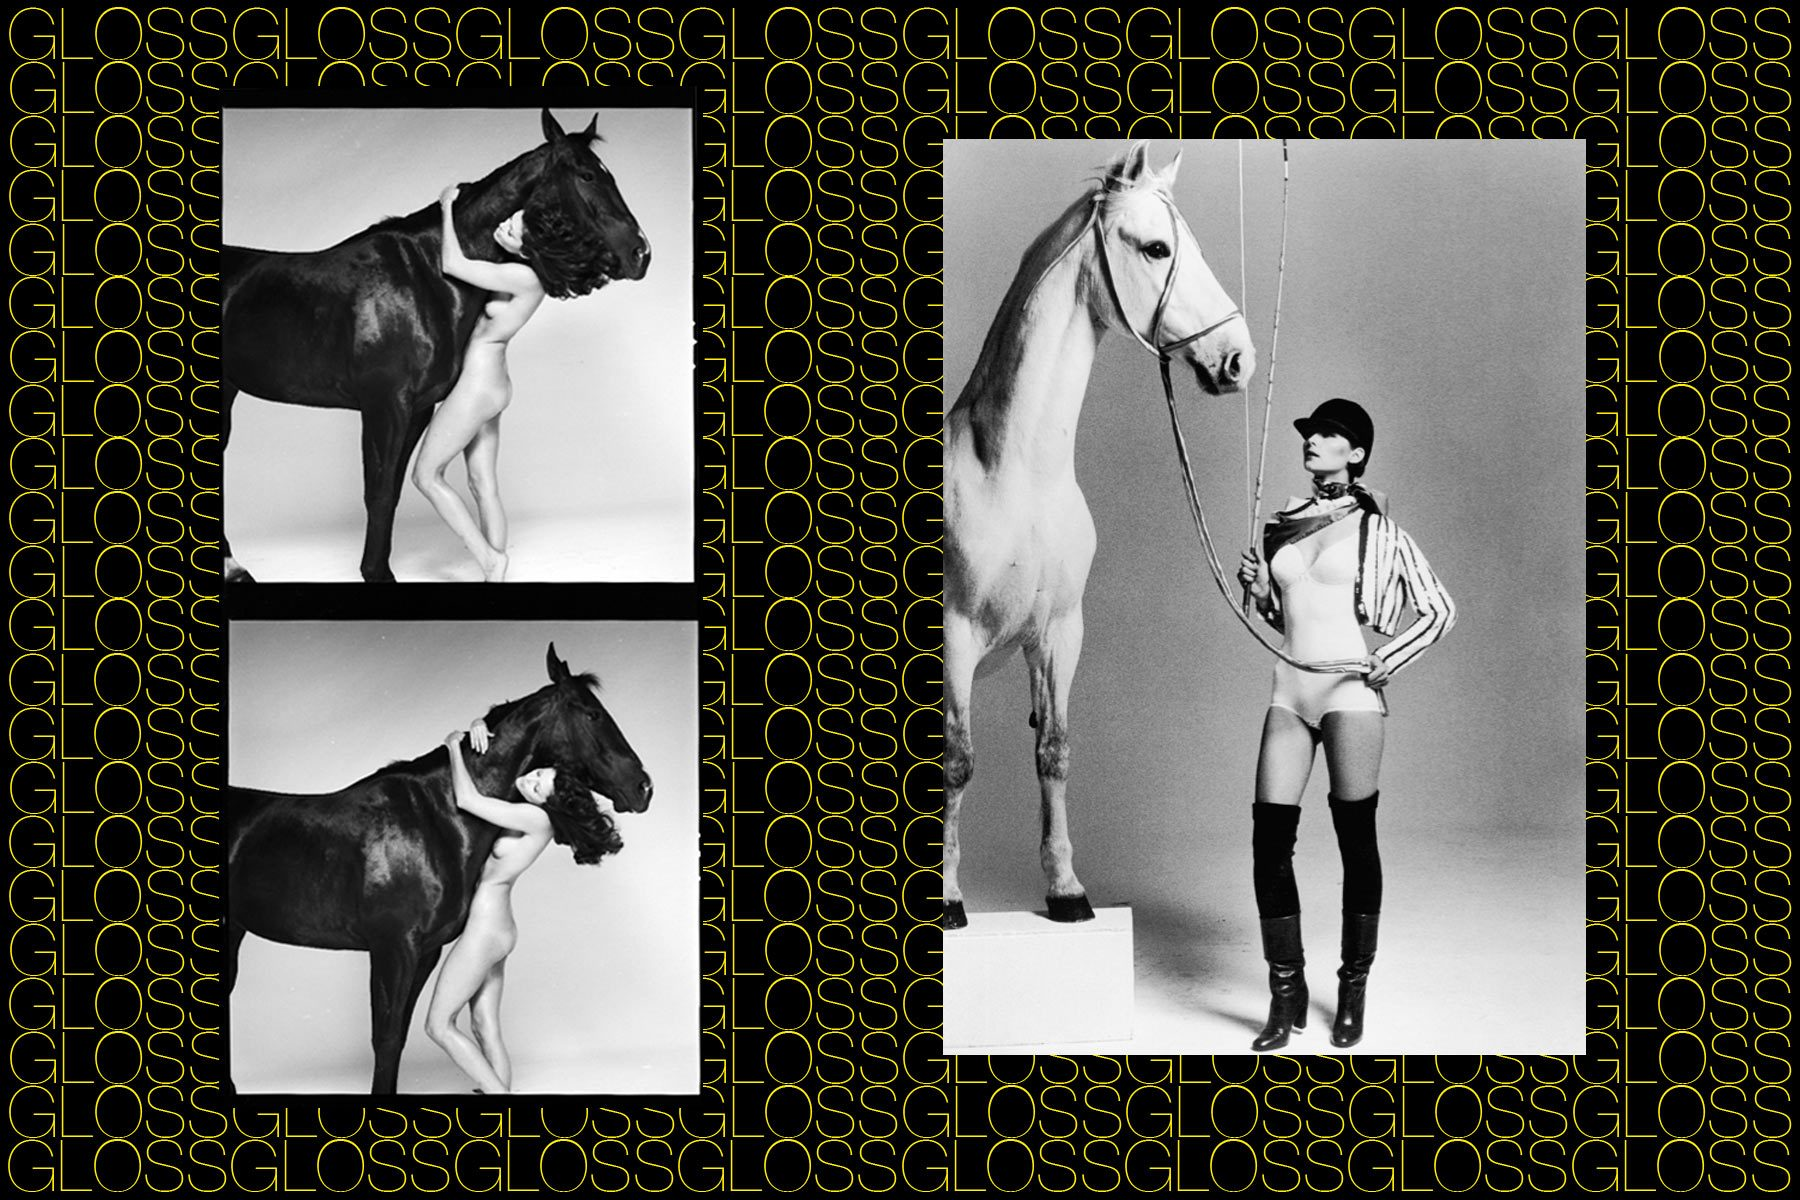 Models pose with horses, from the Rizzoli book GLOSS, on fashion photographer Chris von Wangenheim, by Roger Padilha & Mauricio Padilha. Ponyboy magazine NY.